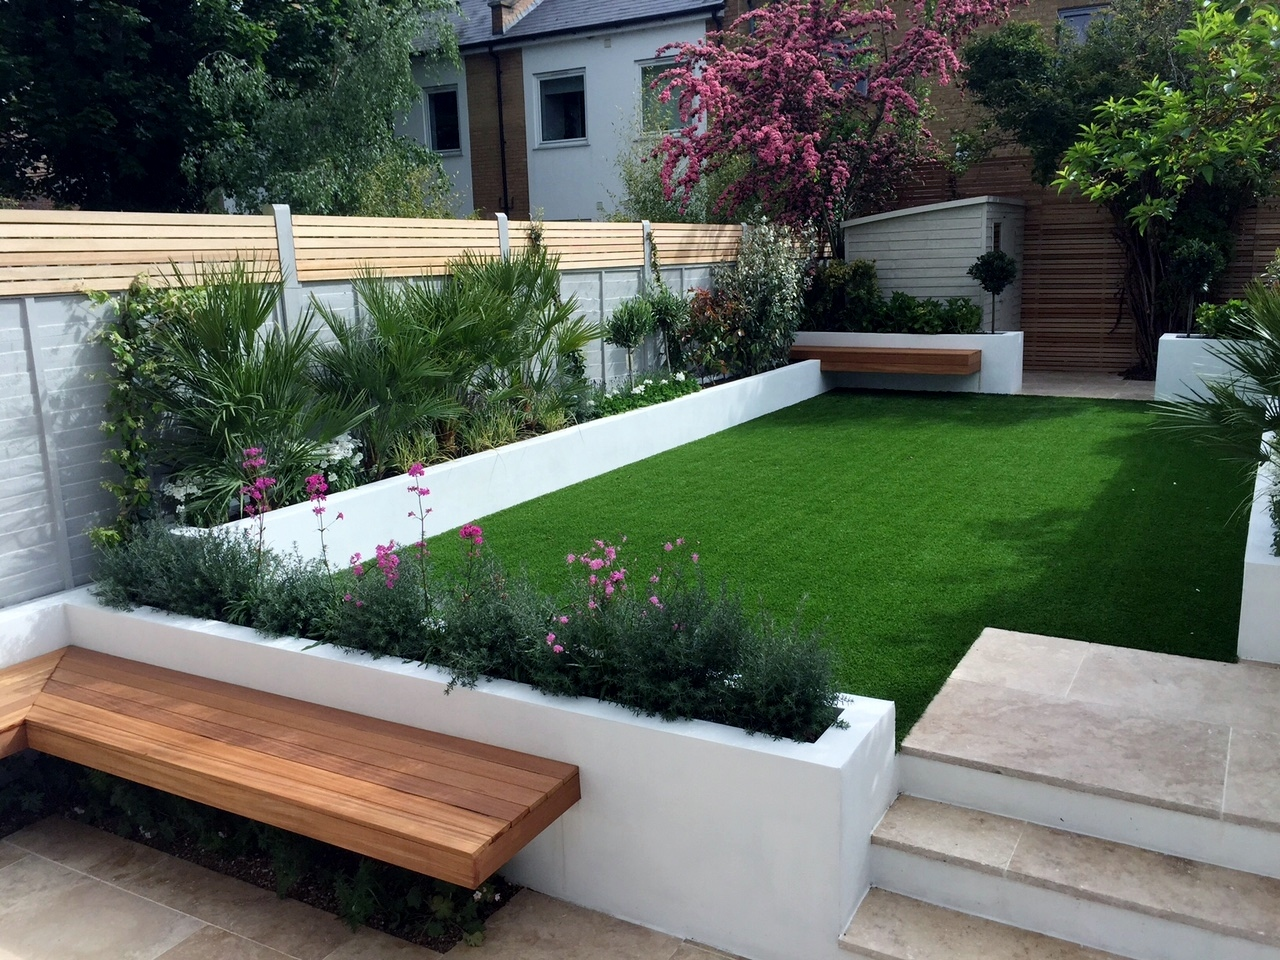 Modern garden design ideas fulham chelsea battersea for Small garden design uk